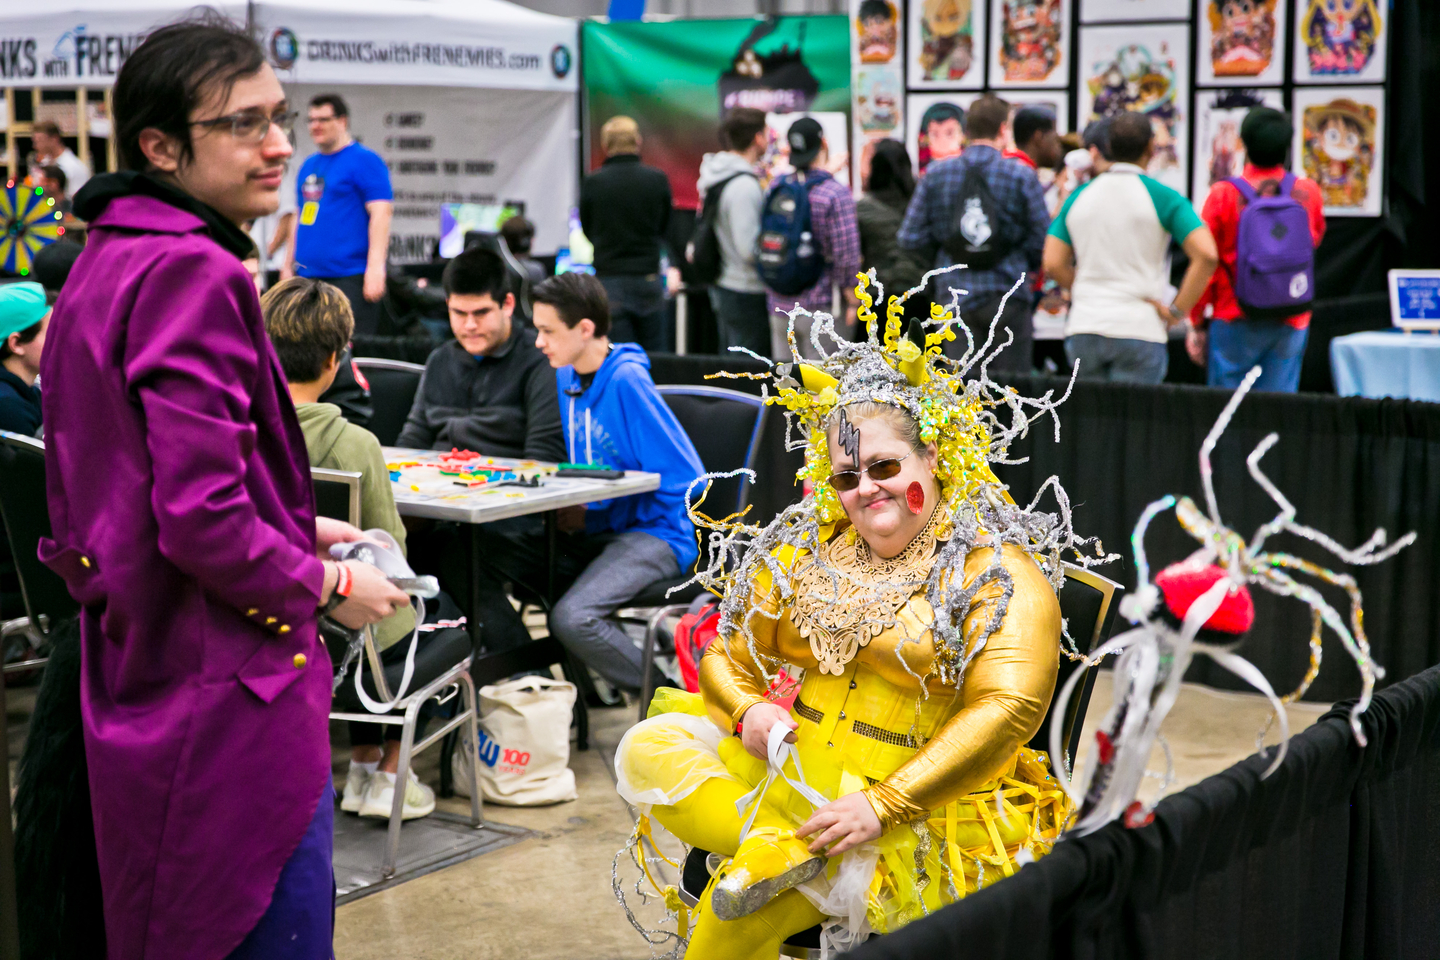 SXSW Gaming Expo – Photo by Travis Lilley